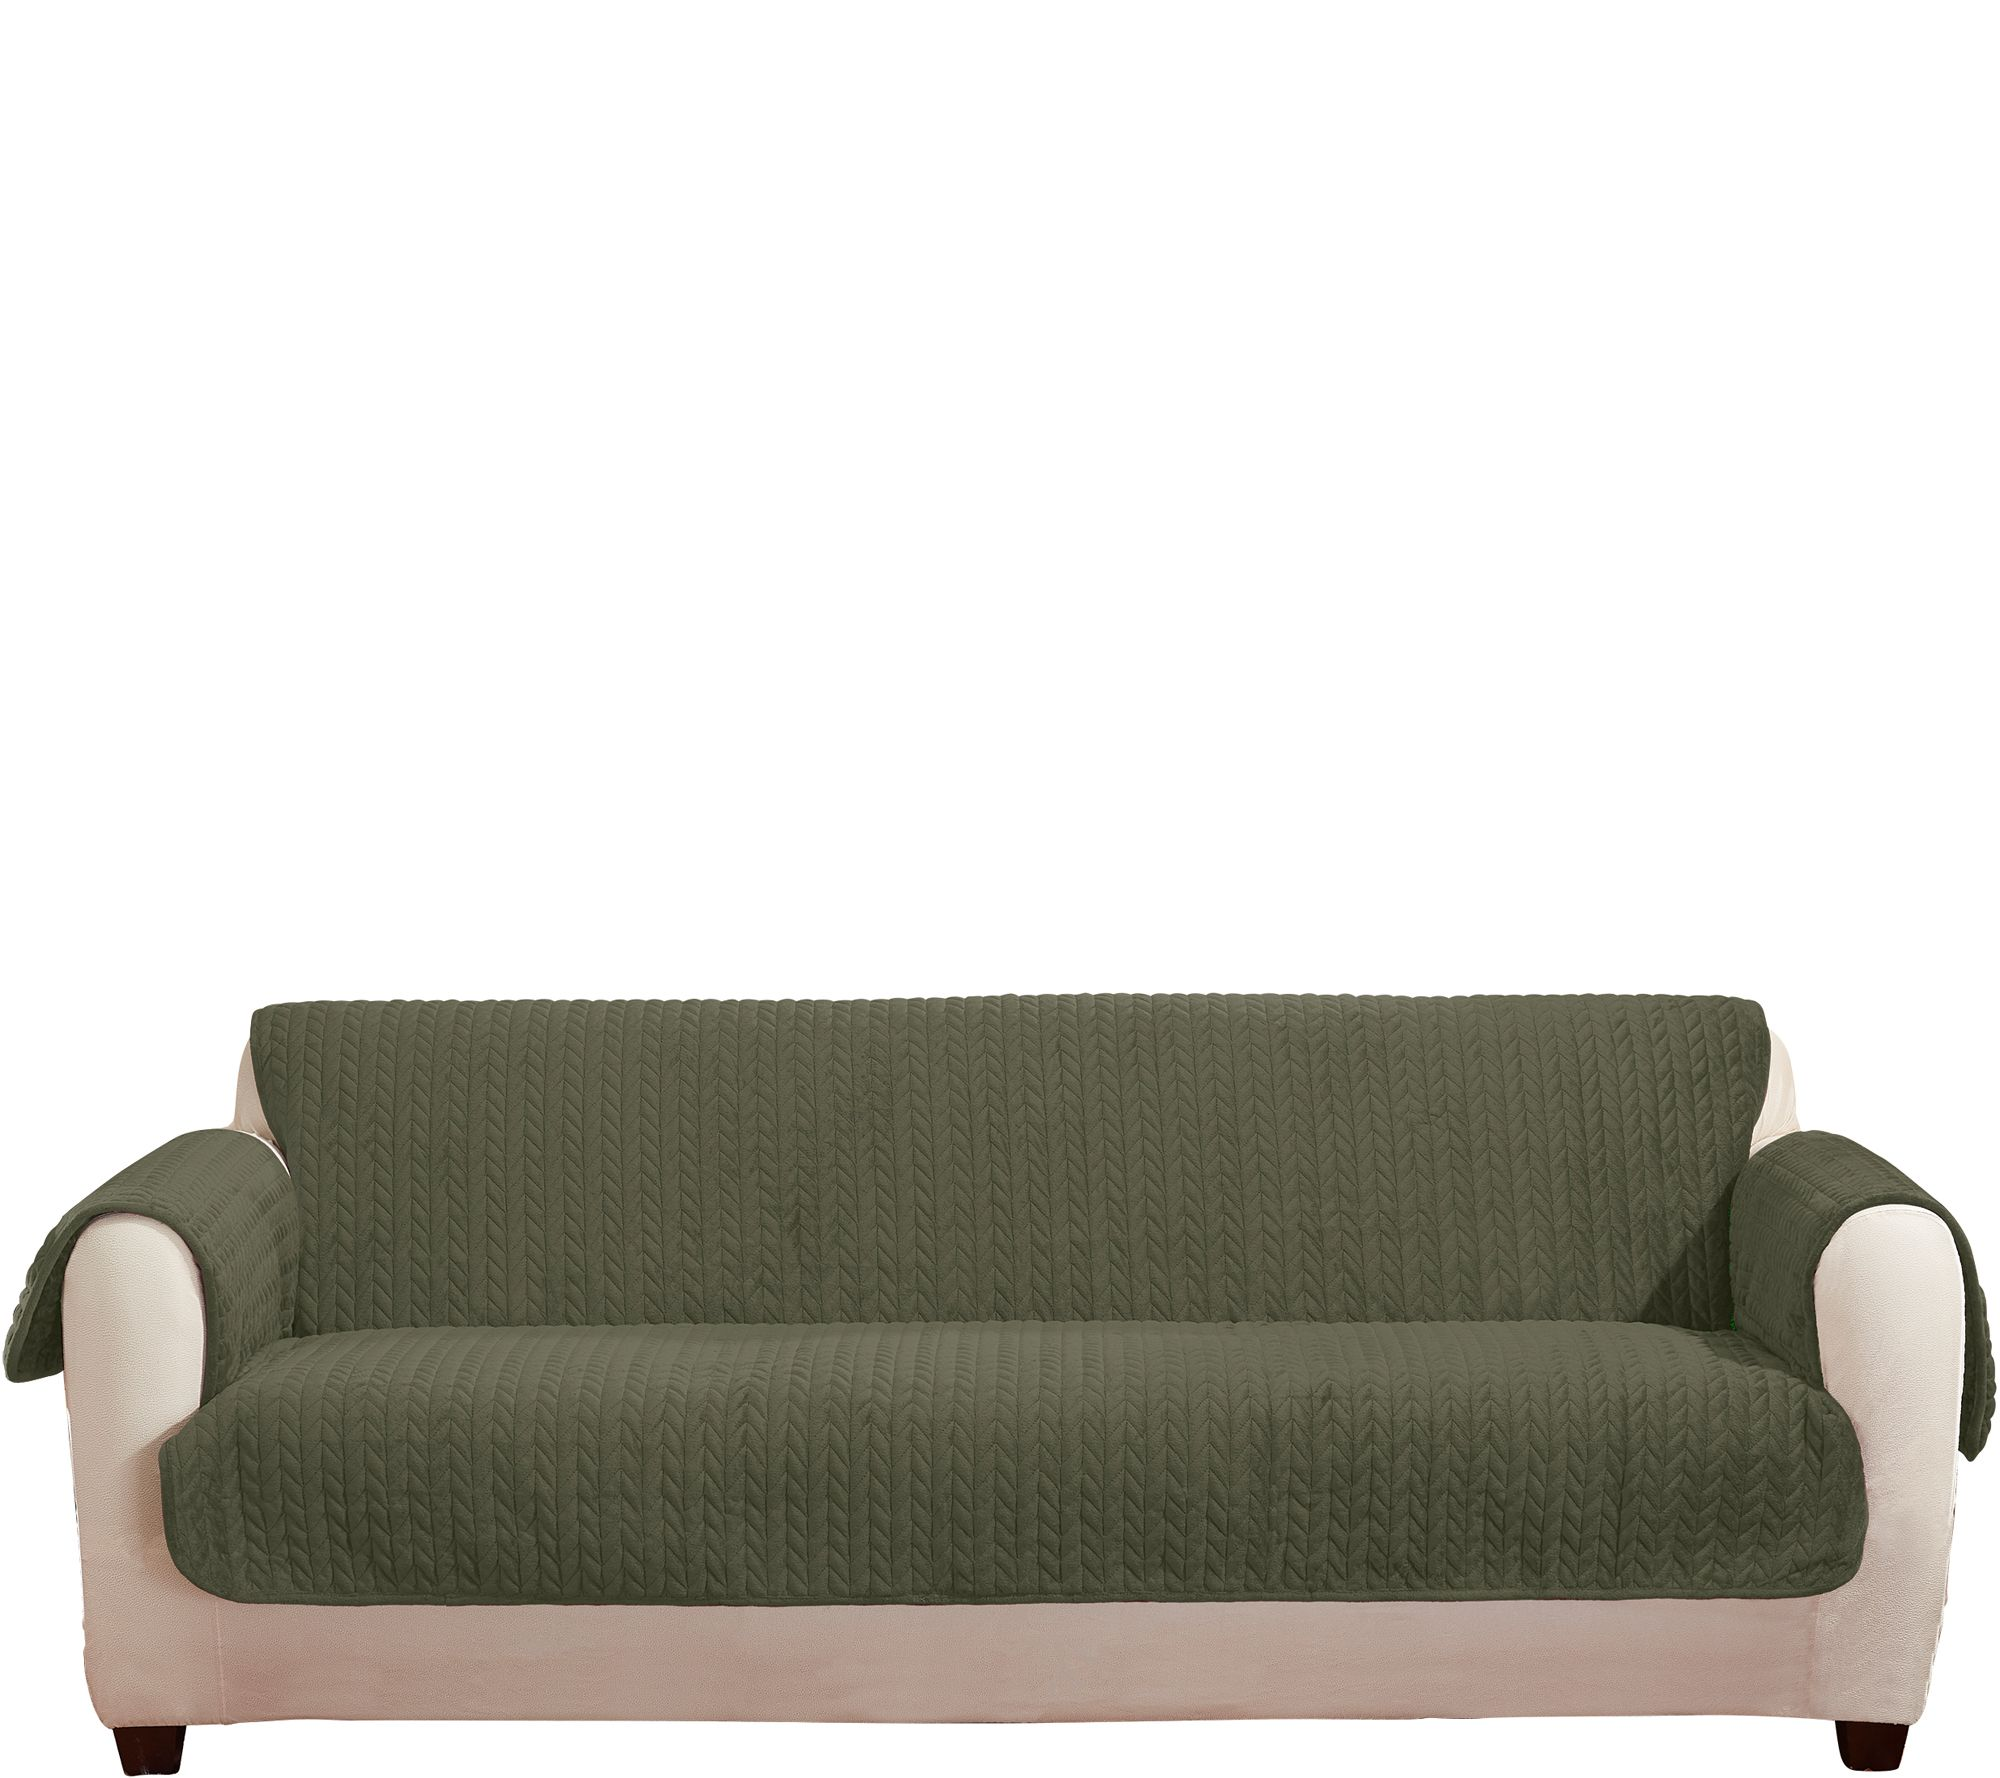 Sure Fit — For the Home — QVC.com : sure fit quilted cotton furniture friends - Adamdwight.com